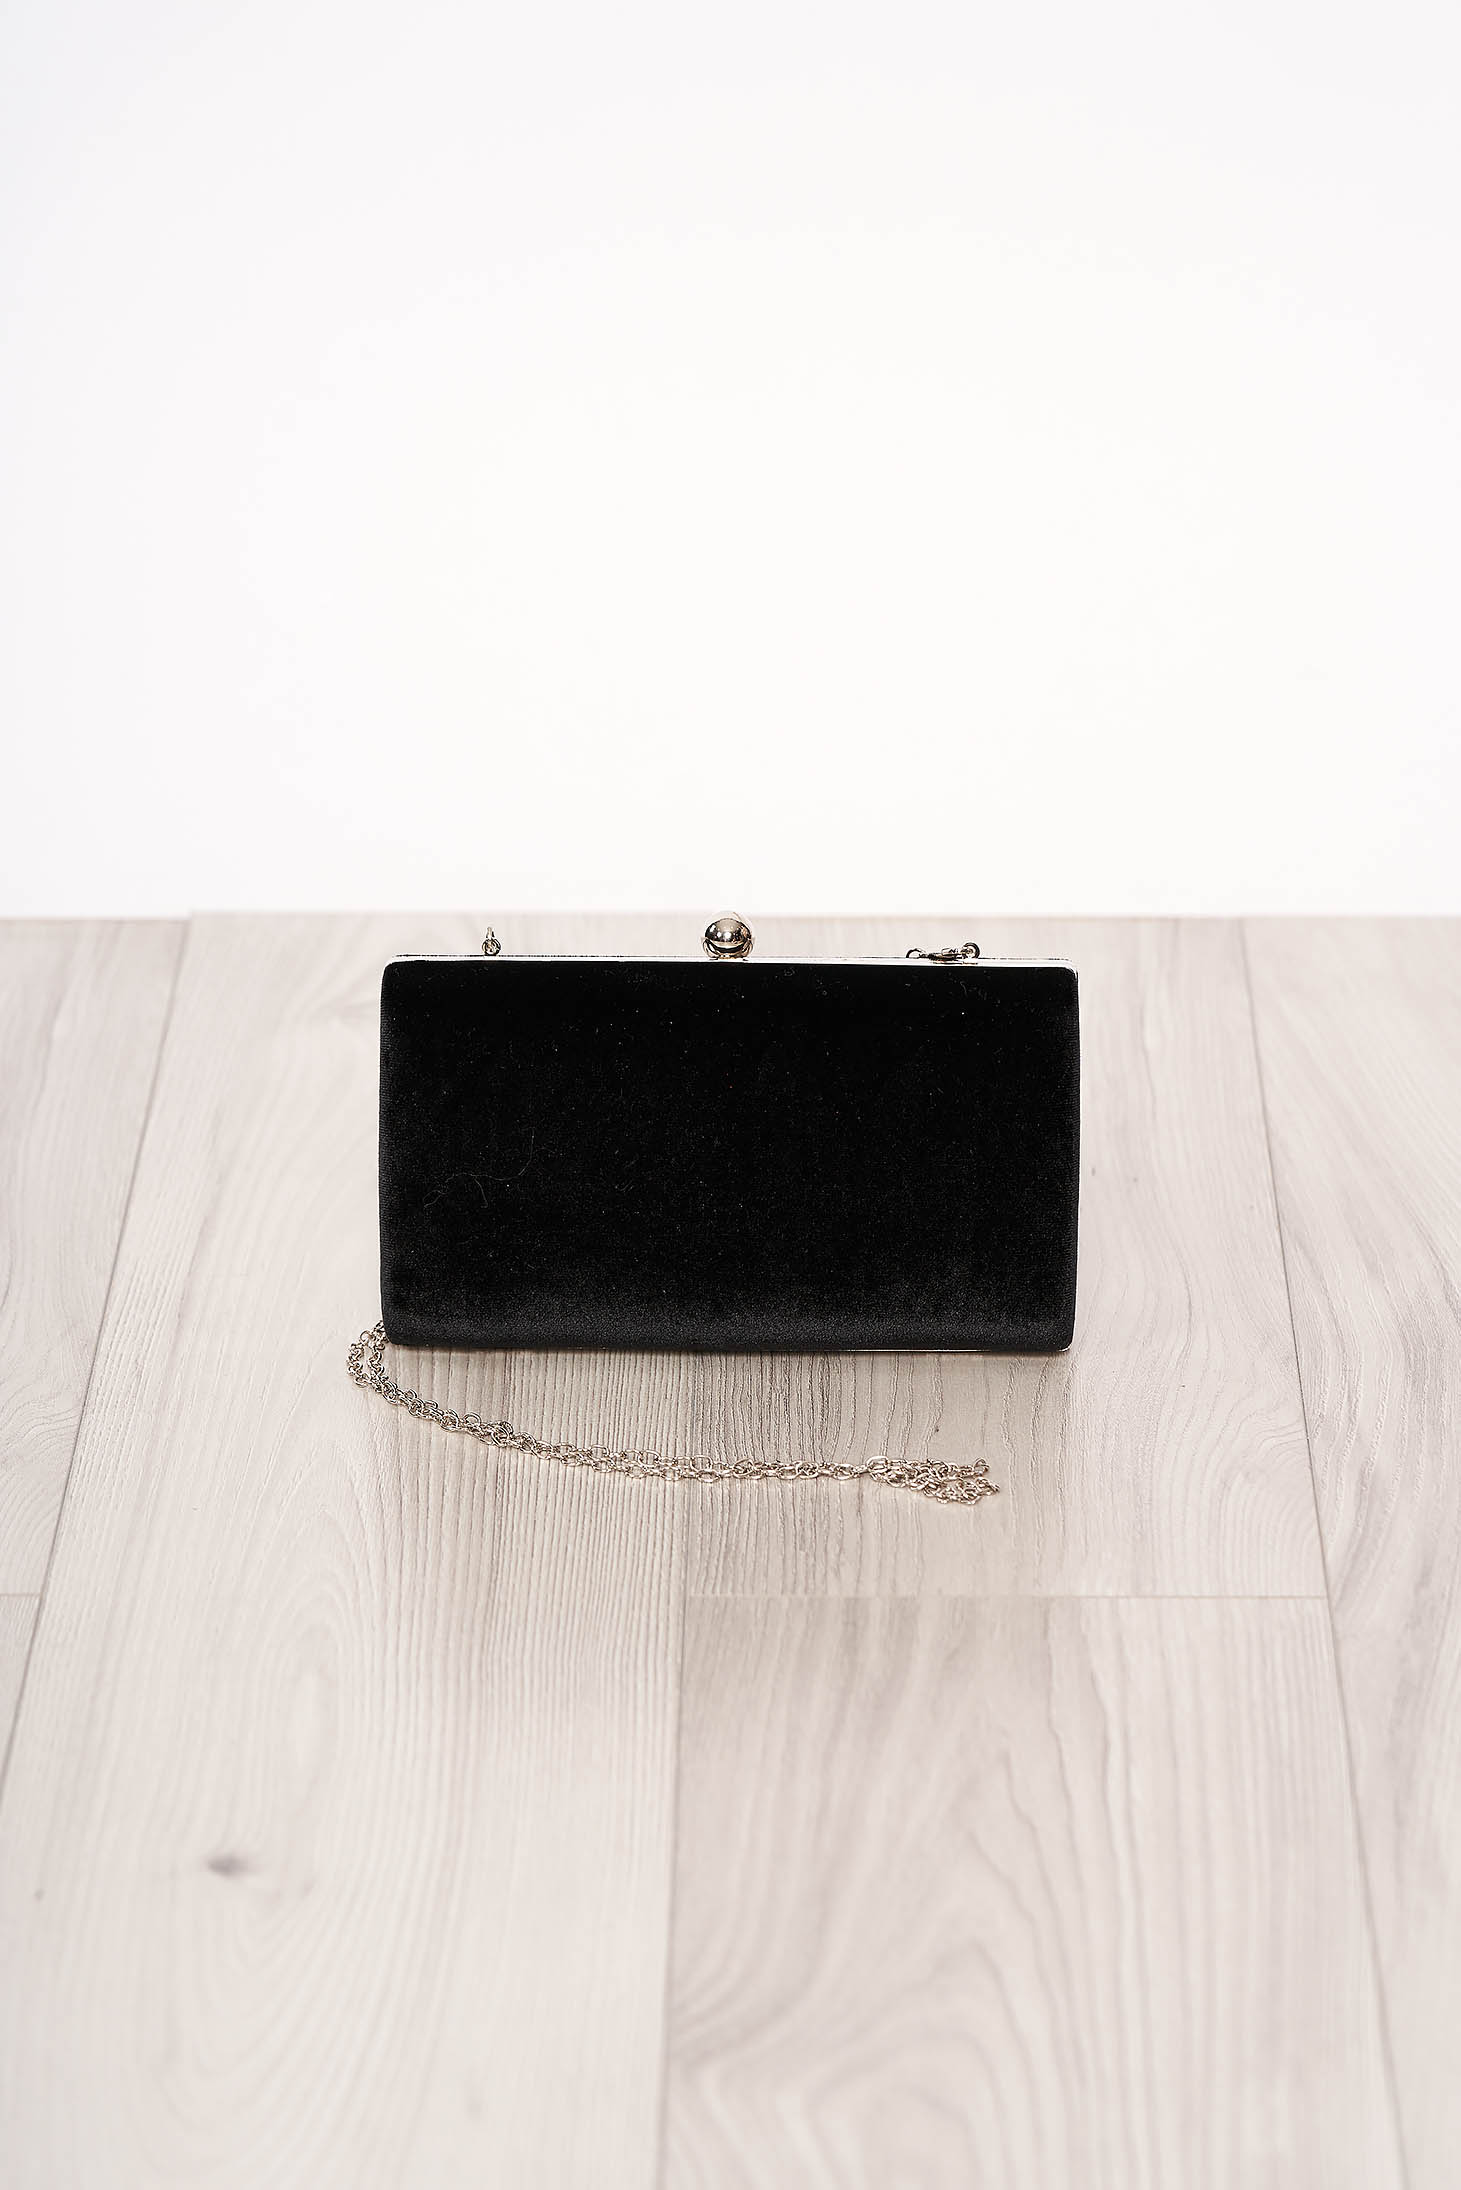 Bag black long chain handle allure of satin buckle accessory from ecological suede occasional